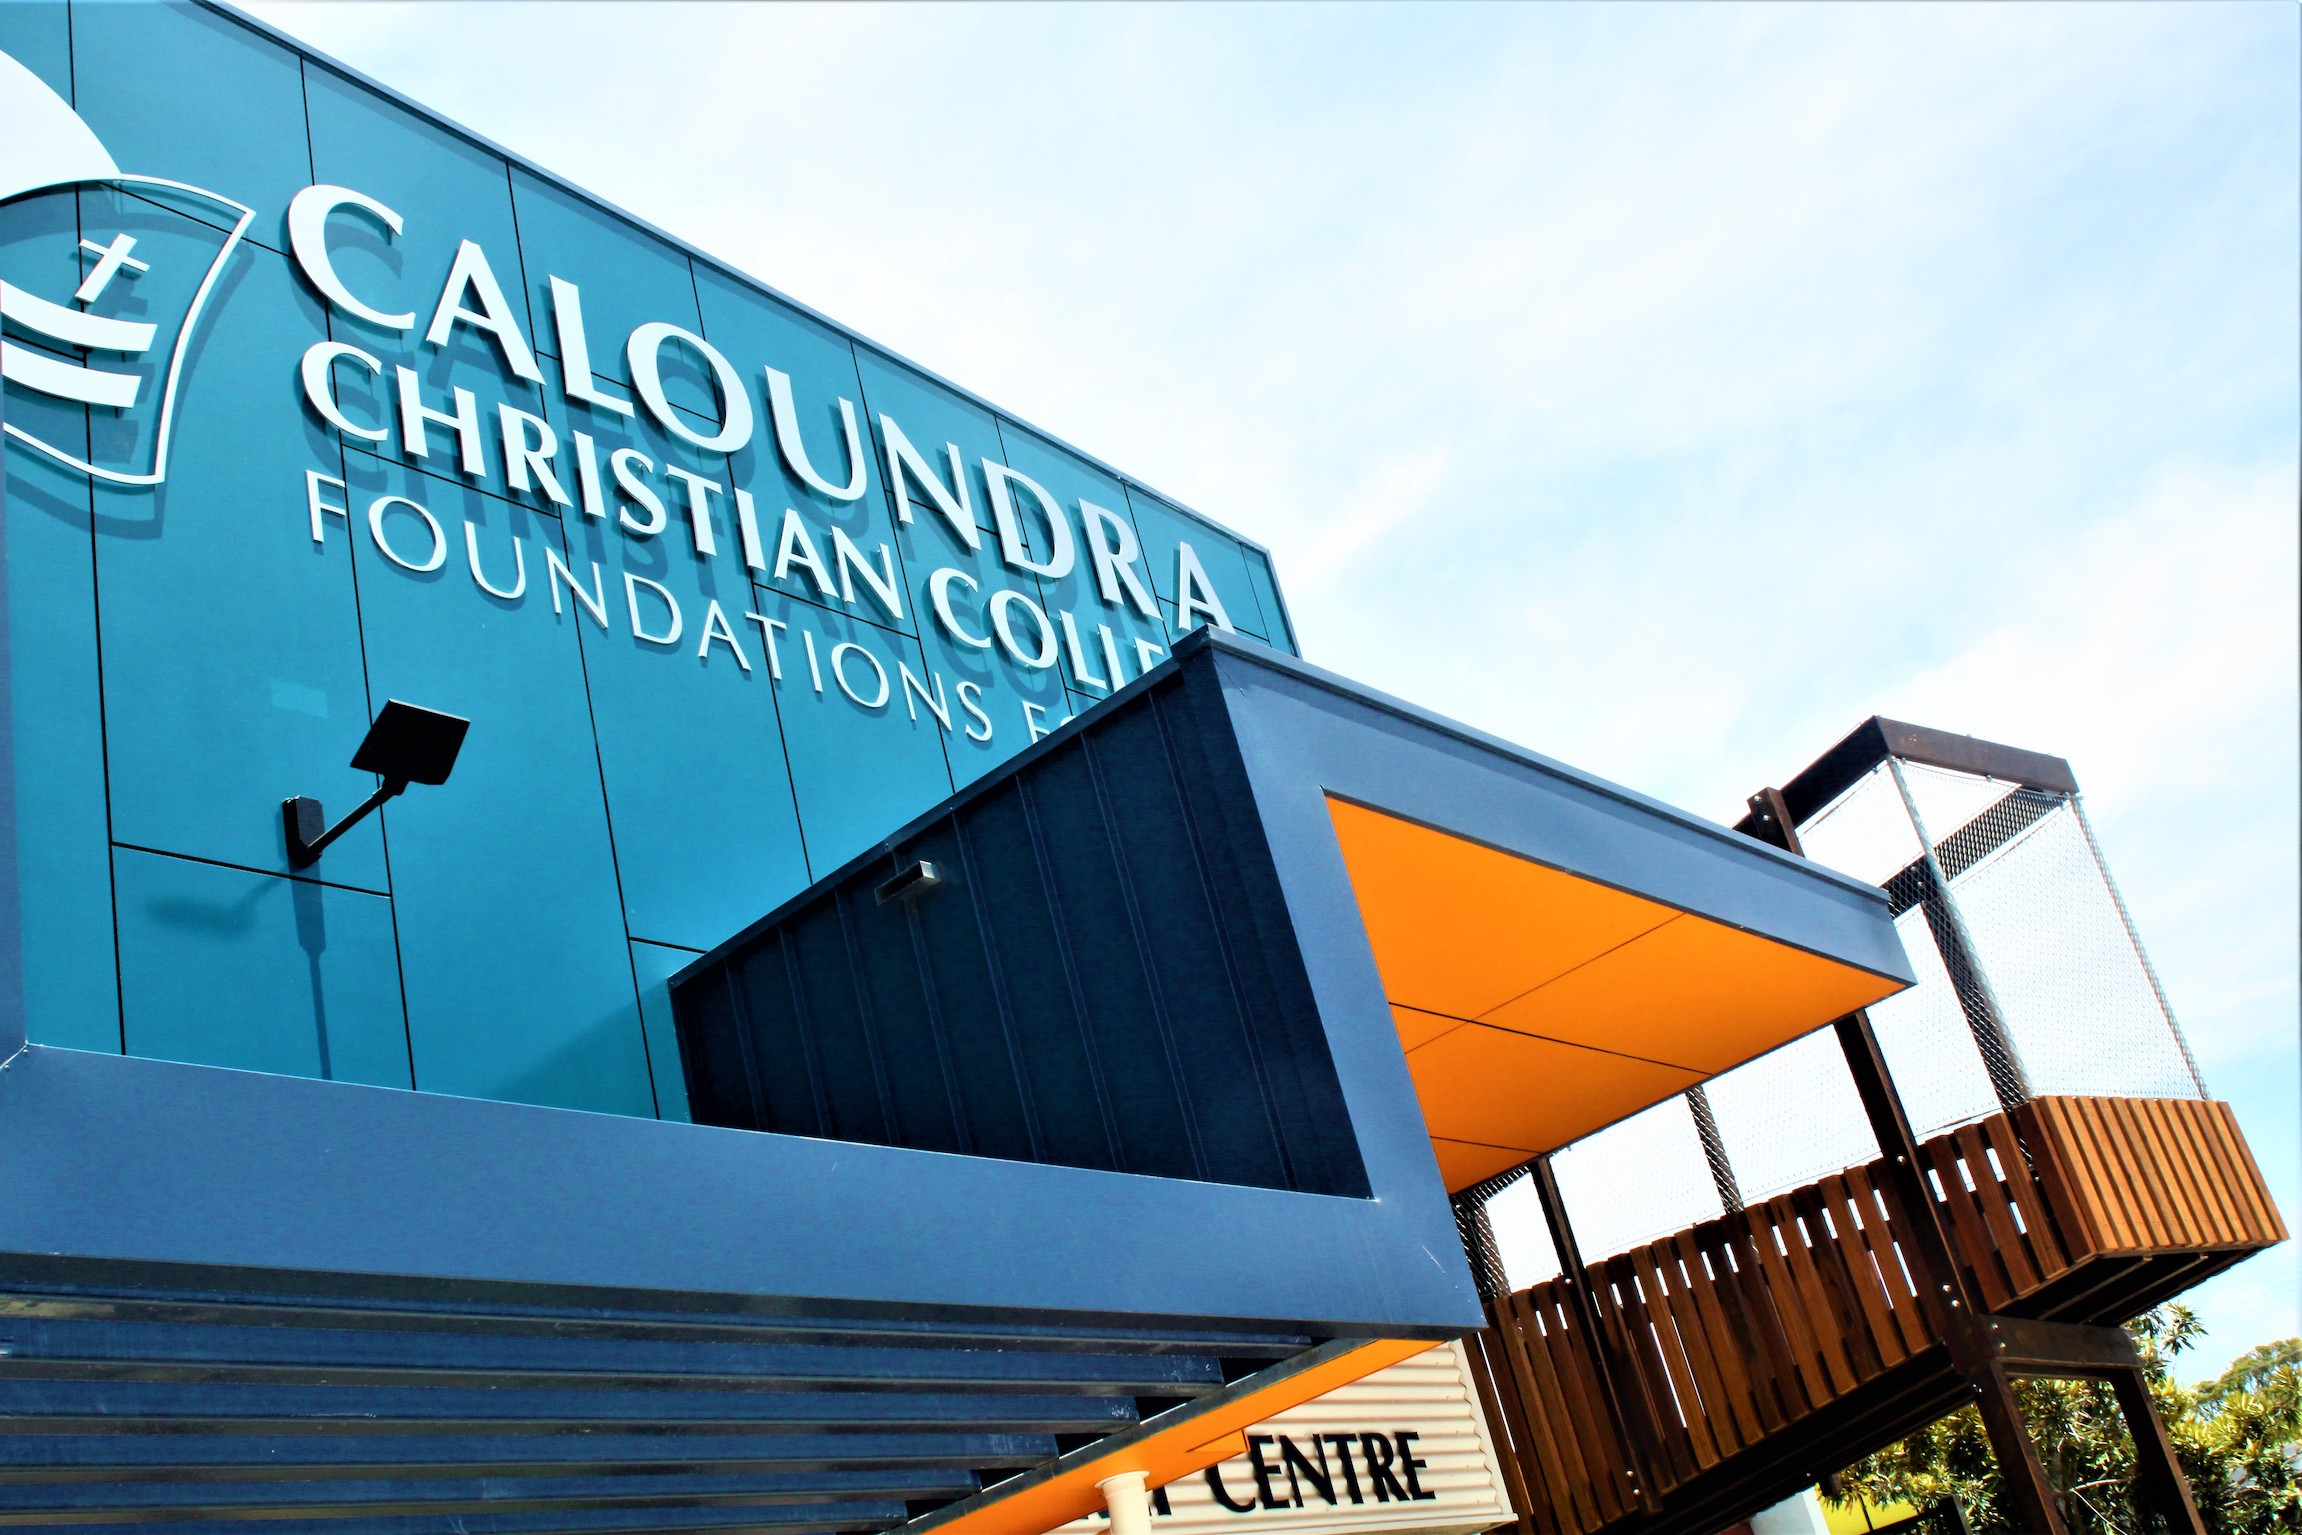 Caloundra Christian College upgrade